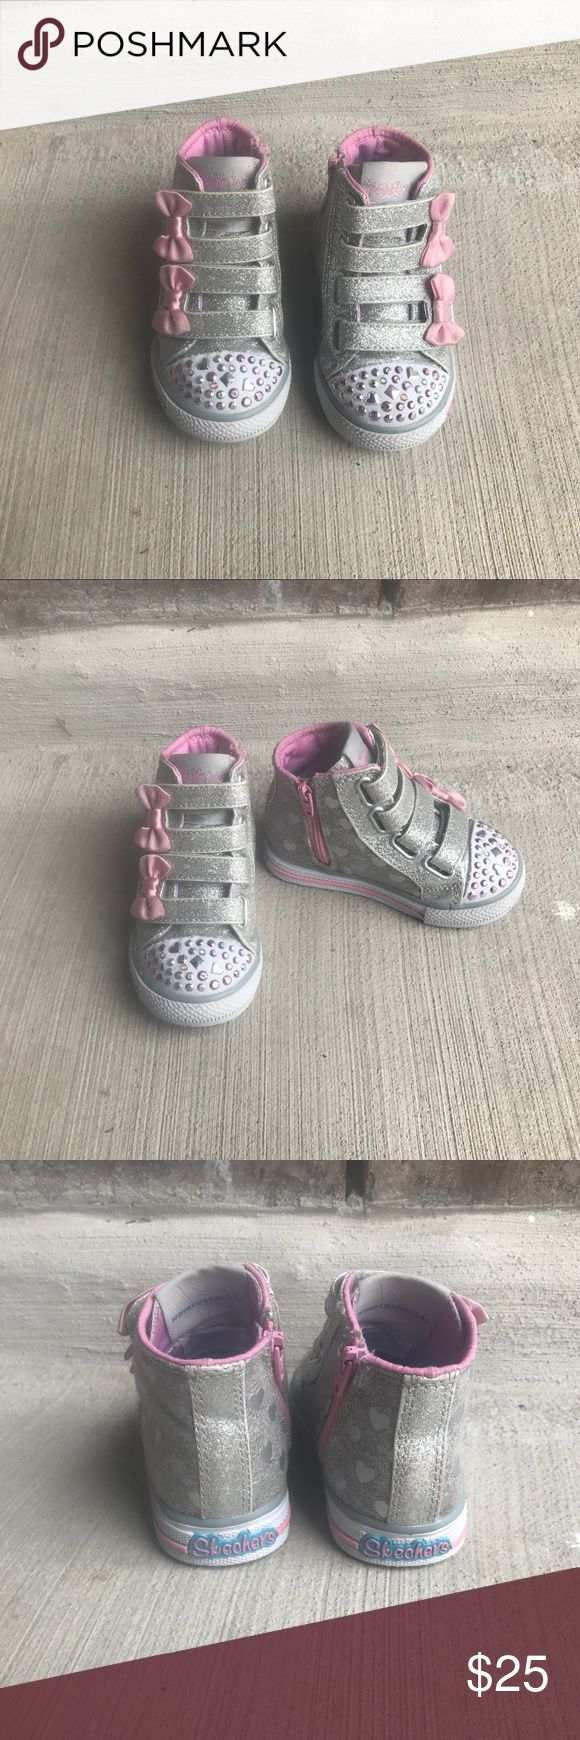 Skechers Twinkle Toes high top Skechers Twinkle Toe high top shoes. Size 5, pink and grey. Zips down on the side for easy insert. Used but still in great condition, lights still light up. Always got compliments on these shoes, very cute! Pet and smoke free home. Skechers Shoes Sneakers